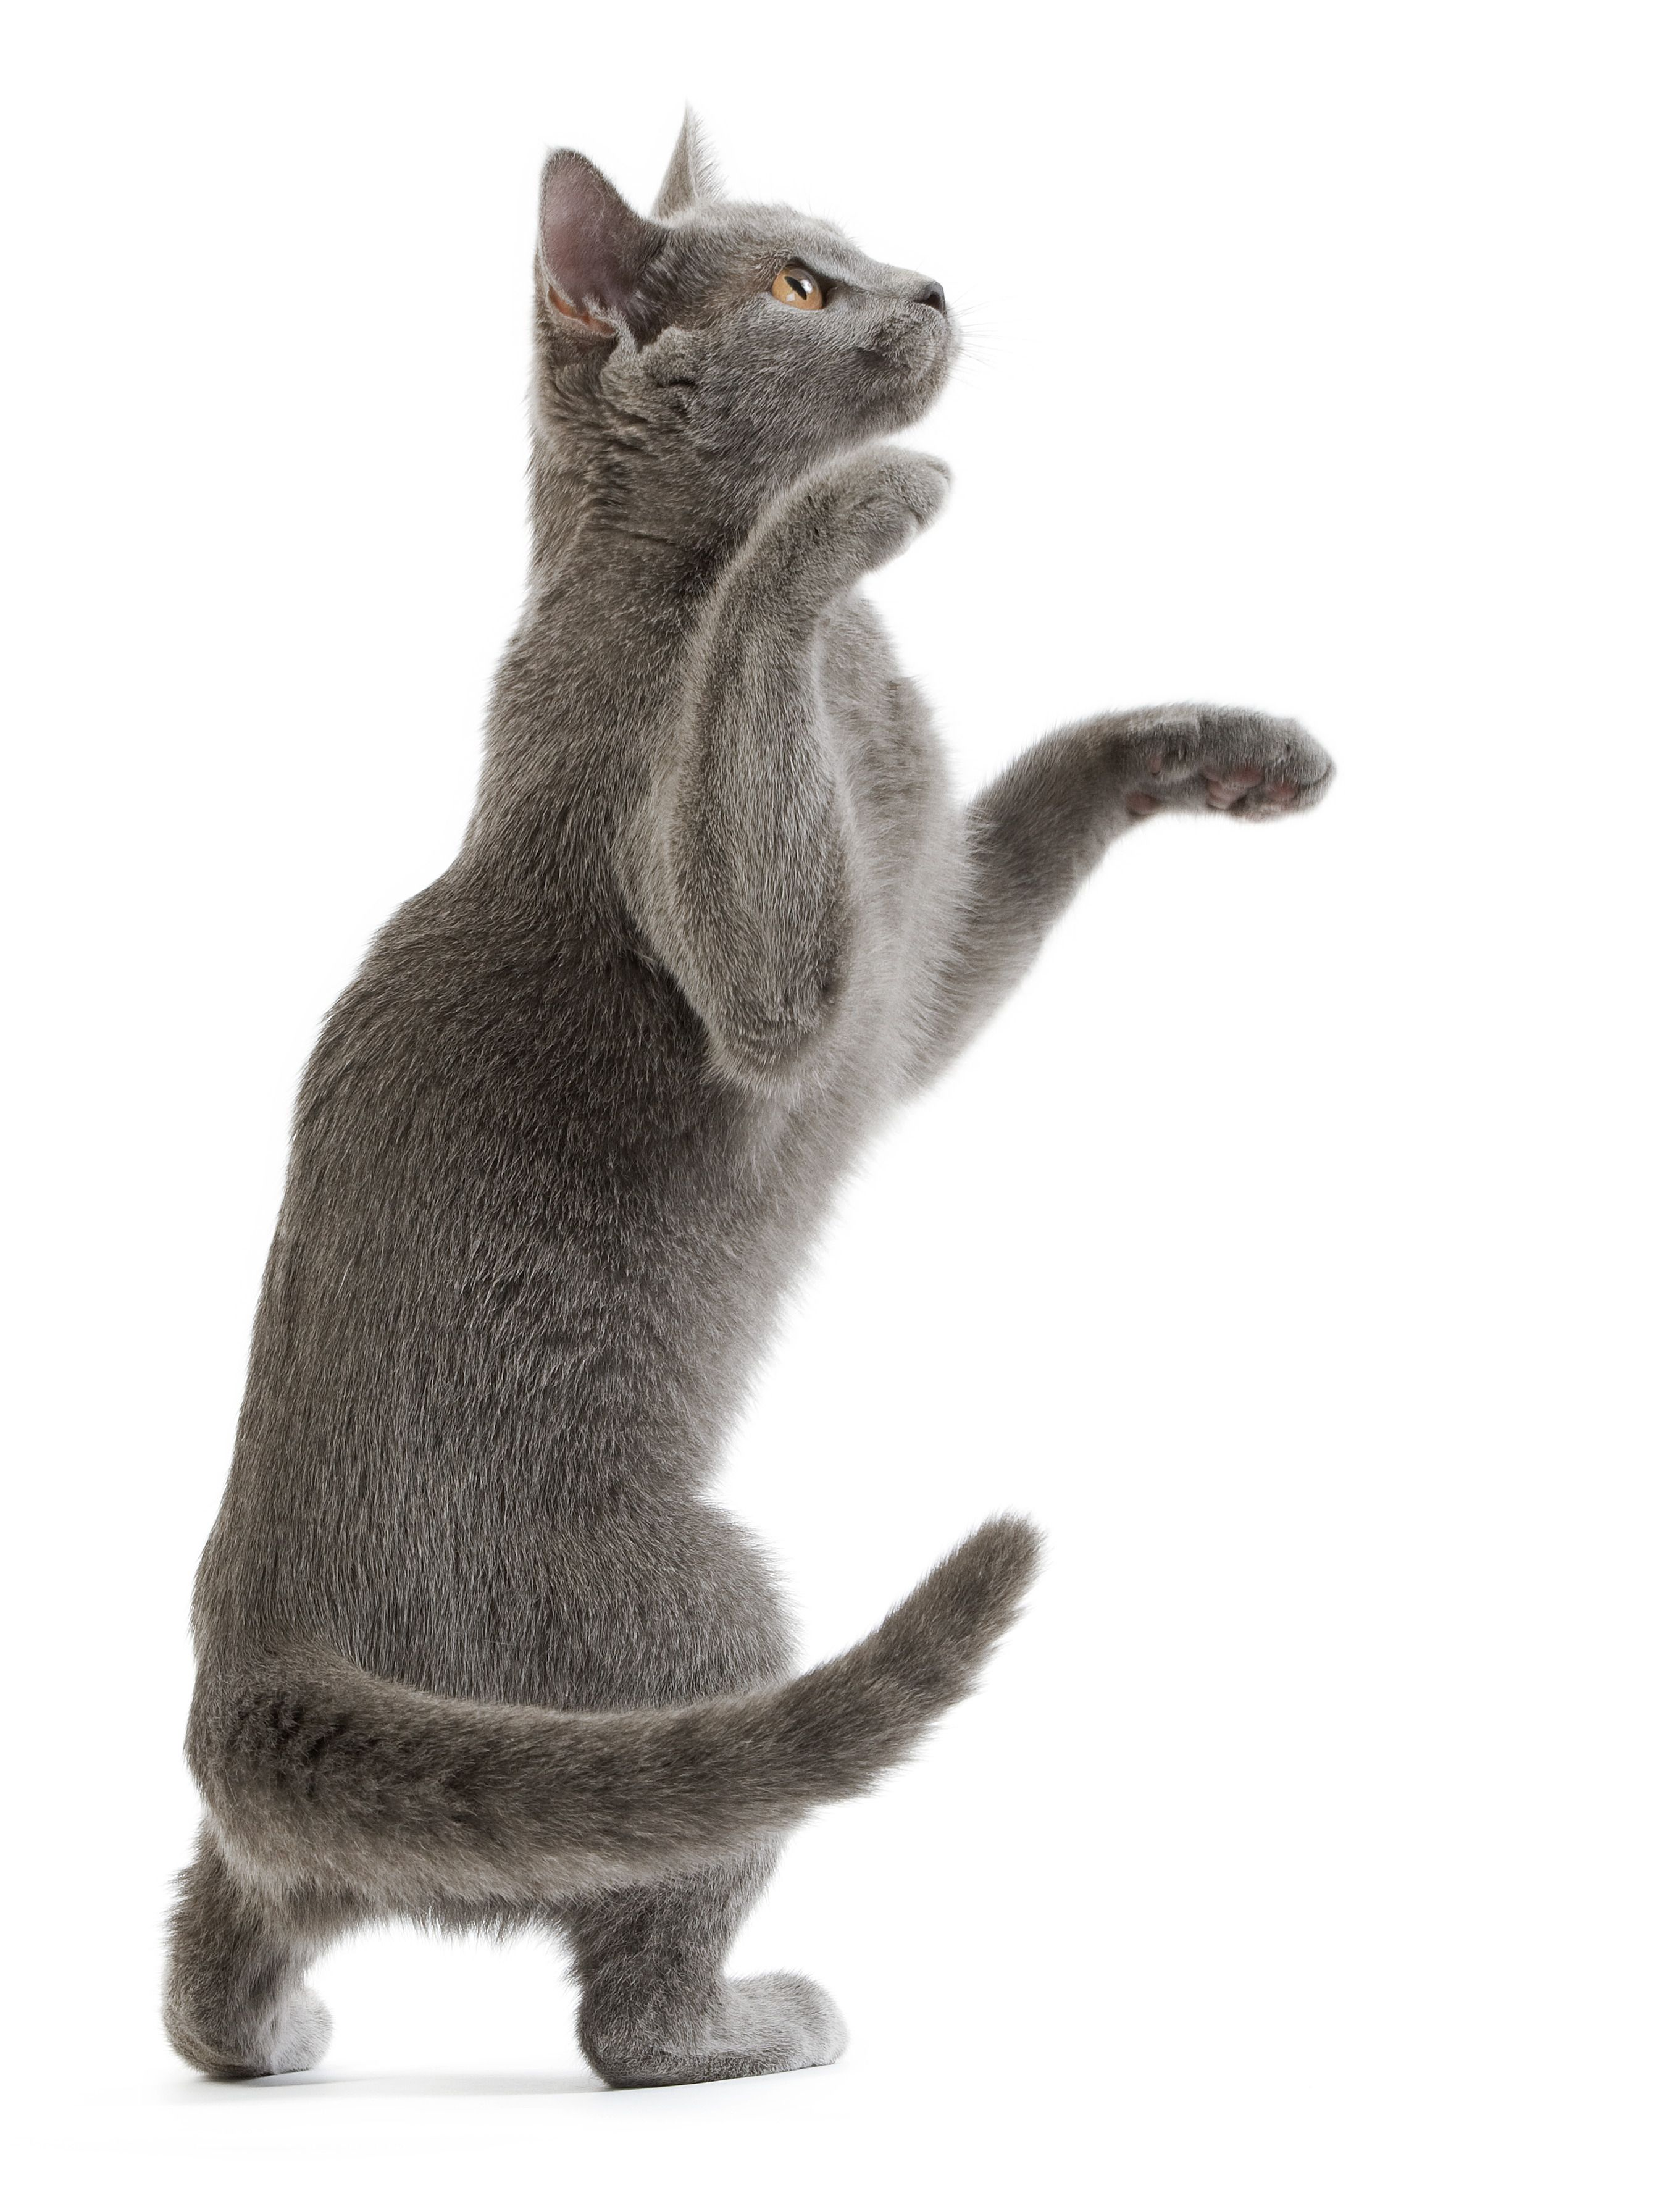 Le Chat Chartreux Chartreux Cat Cats And Kittens Cat Breeds